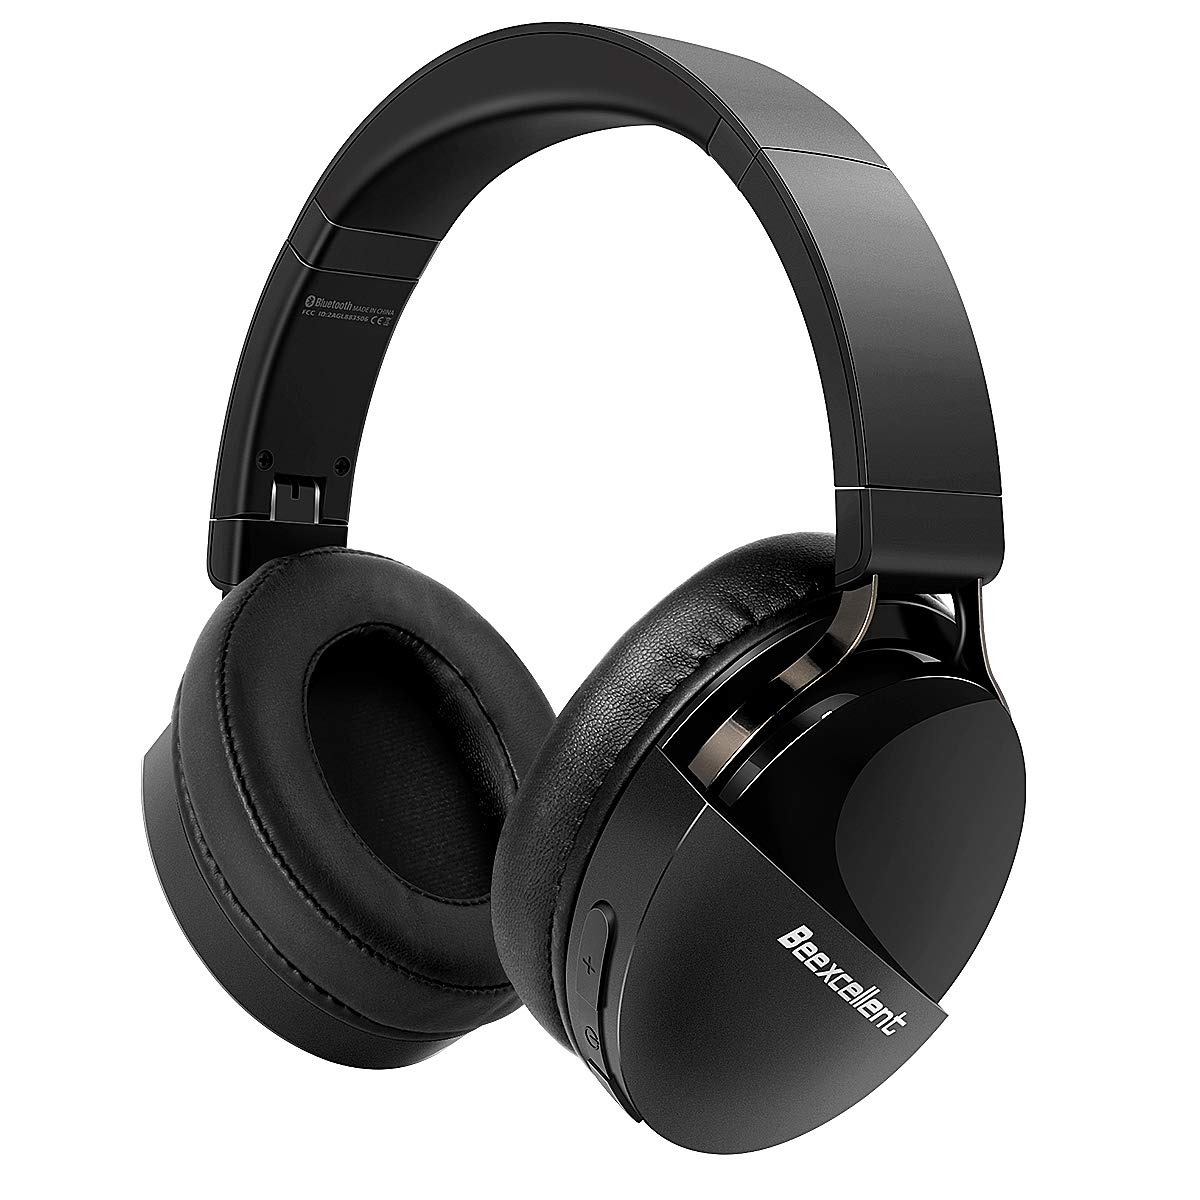 Beexcellent Wireless Bluetooth Headphones, 40 Hours HiFi Stereo Cvc6.0 Bluetooth 5.0 Over Ear Headphones with Mic for iPhone Samsung Huawei iPad Cellphone